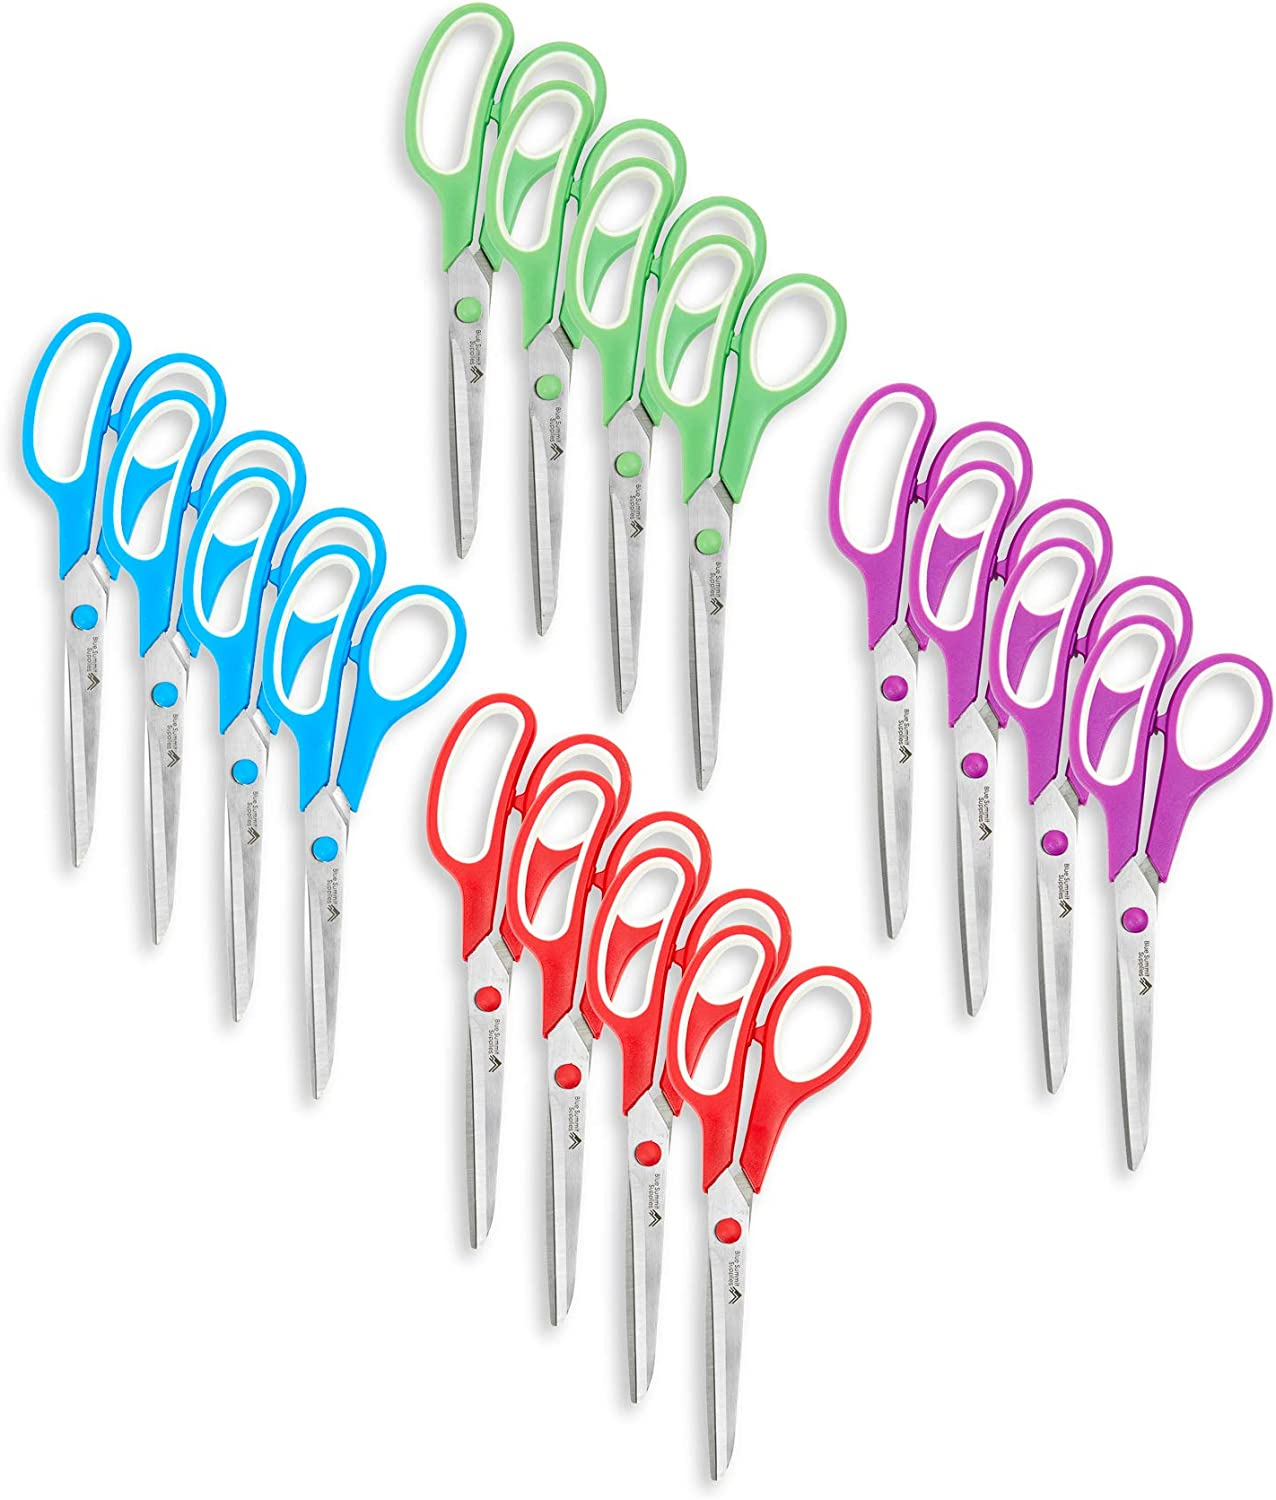 Blue Summit Supplies Multi Purpose Scissors, 8 Inch Household Shears with Comfort Grip, Sharp Scissors for Craft or Office, Assorted Colors, 16 Pack